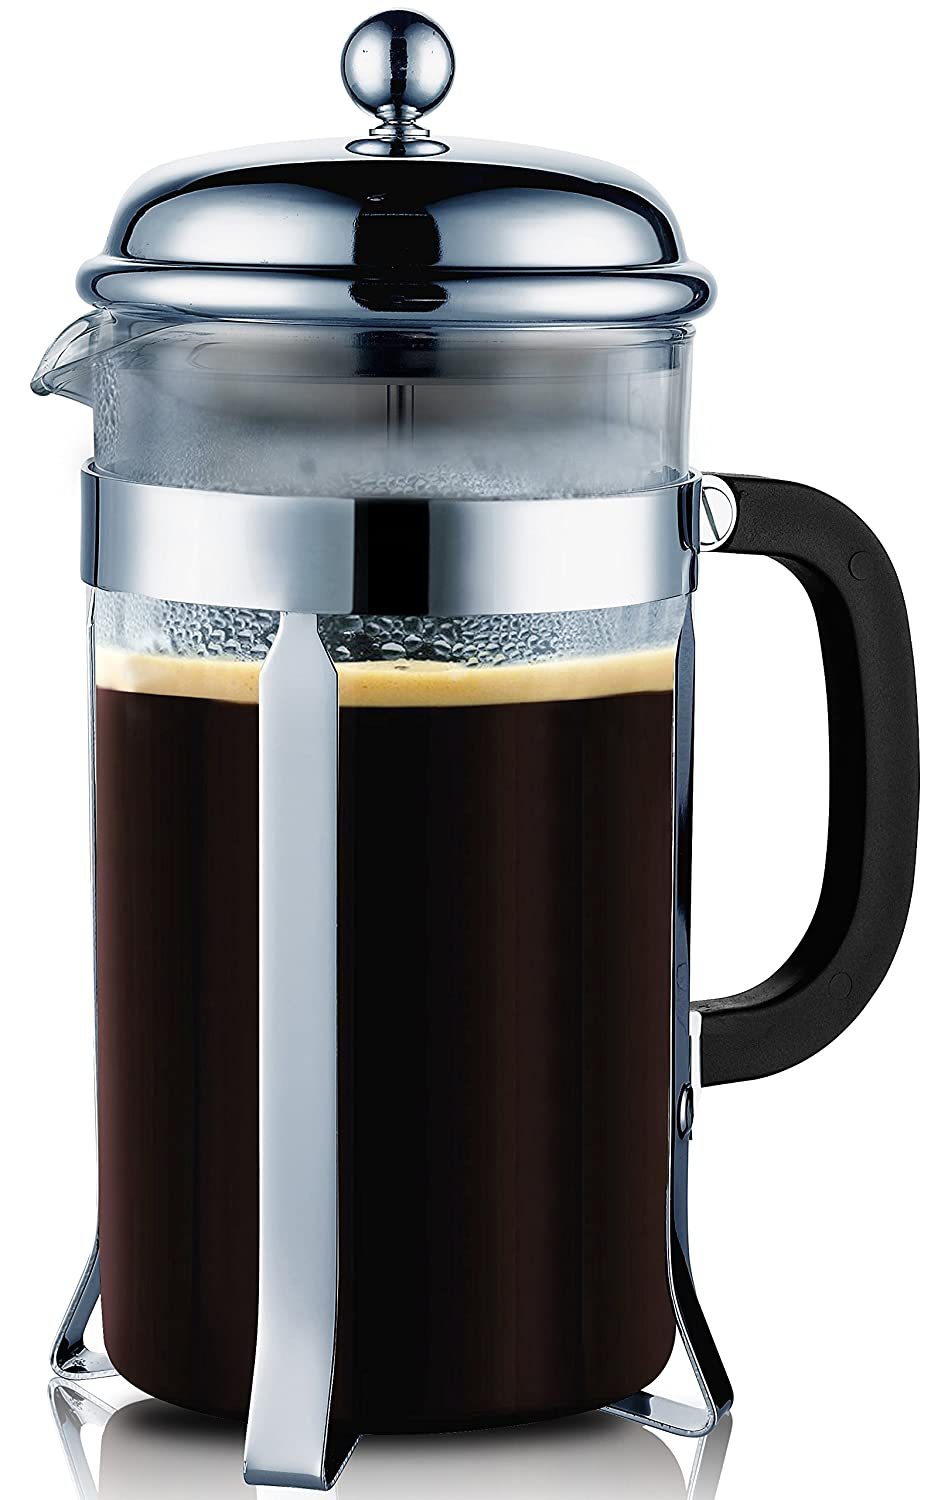 Best French Press Coffee Maker 2014 : SterlingPro 8 Cup/4 Mug (1 liter, 34 oz) French Coffee Press-#1 With 2 BONUS Screen FREE(over ...